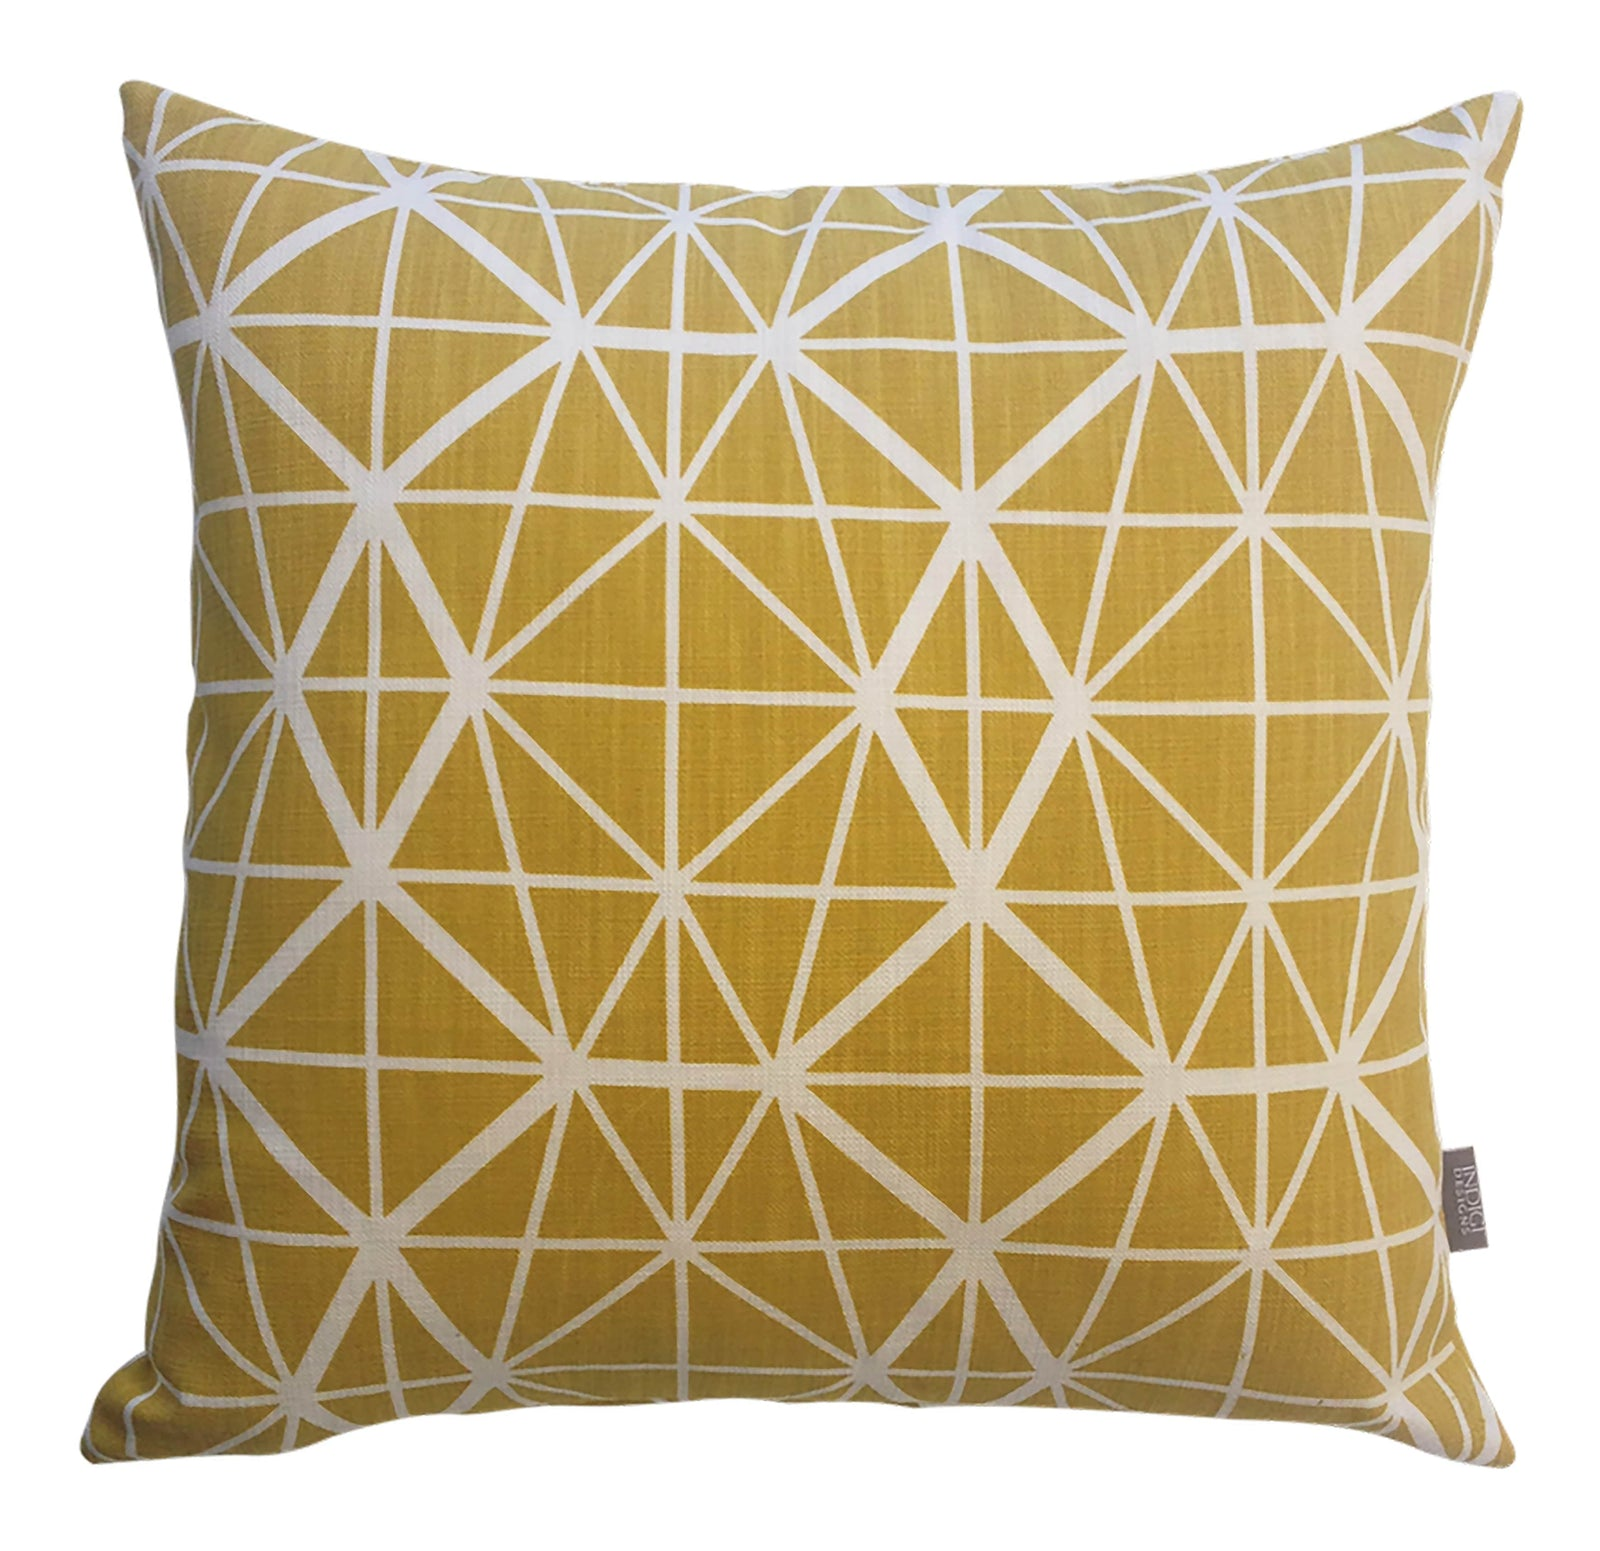 Facet Harvest Cushion Cover